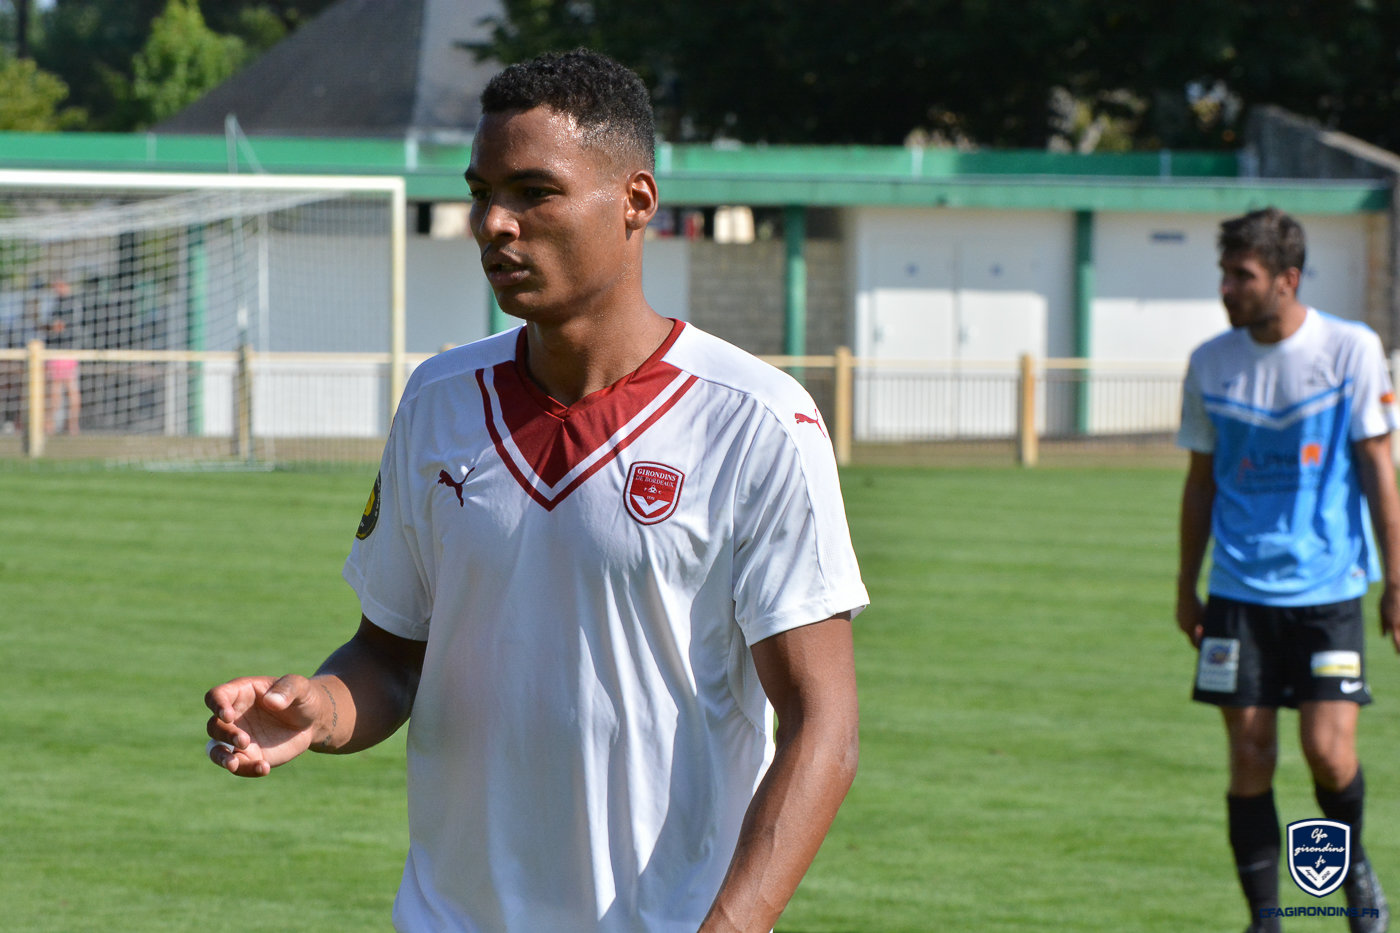 Cfa Girondins : Le point sur les Talents Foot National cette saison - Formation Girondins